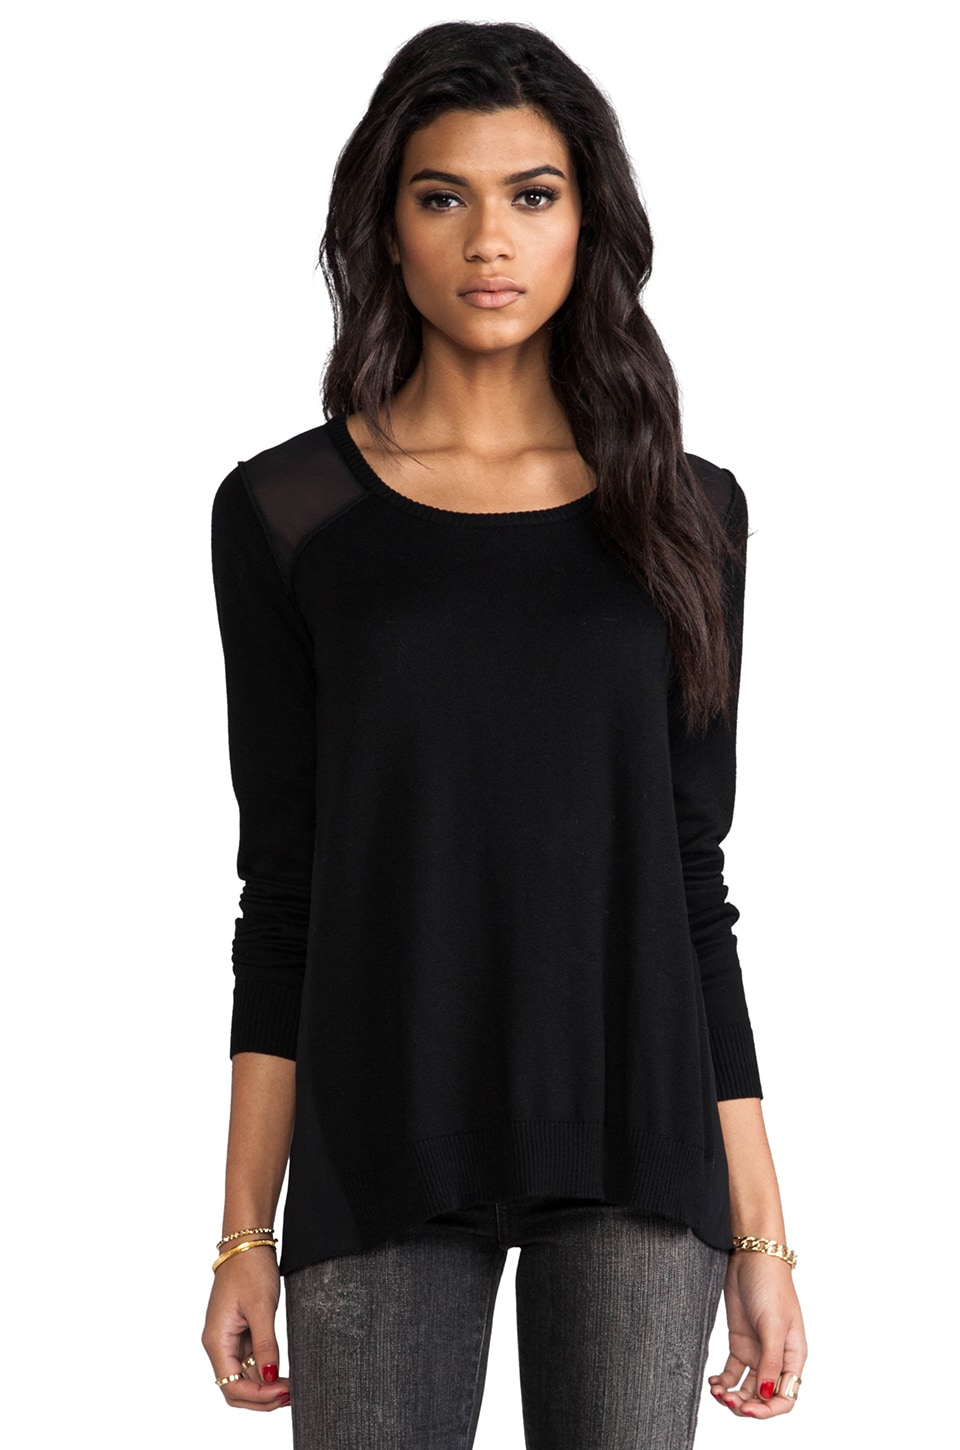 Central Park West Military Marblehead Sweater in Black